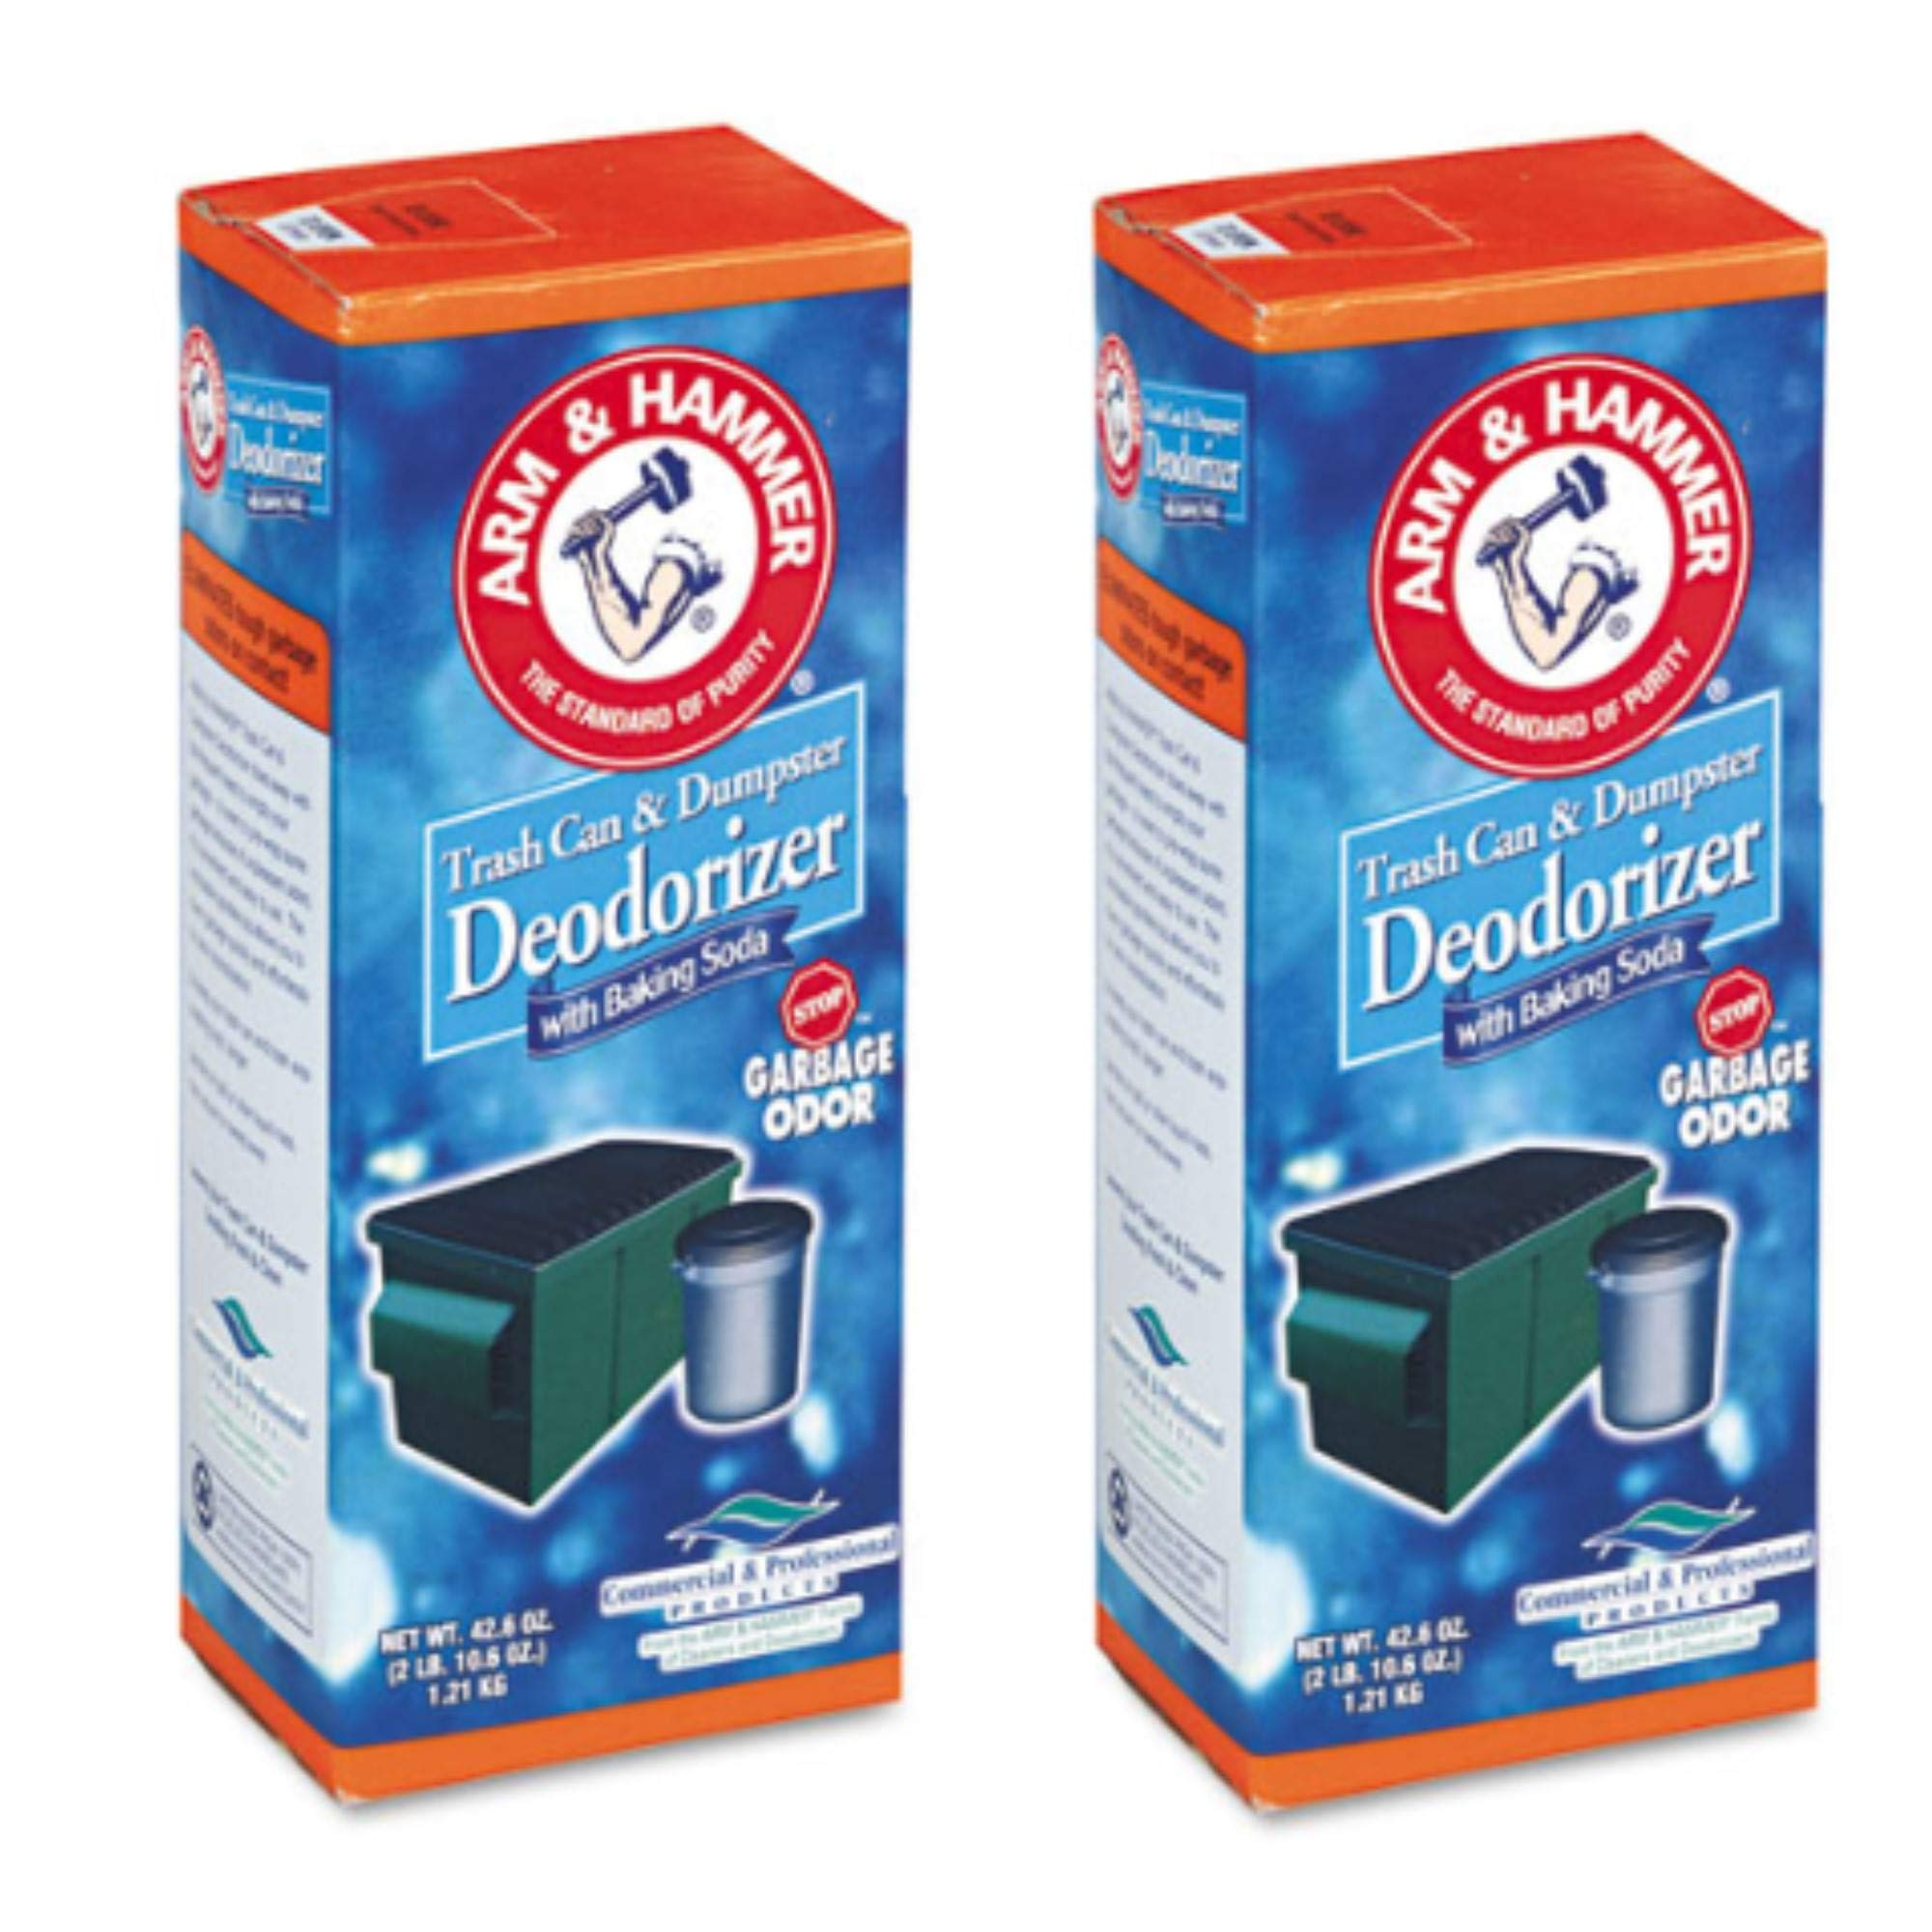 Arm & Hammer 84116 42.6 oz Trash and Dumpster Deodorizer Can (2 PACK) by Arm & Hammer